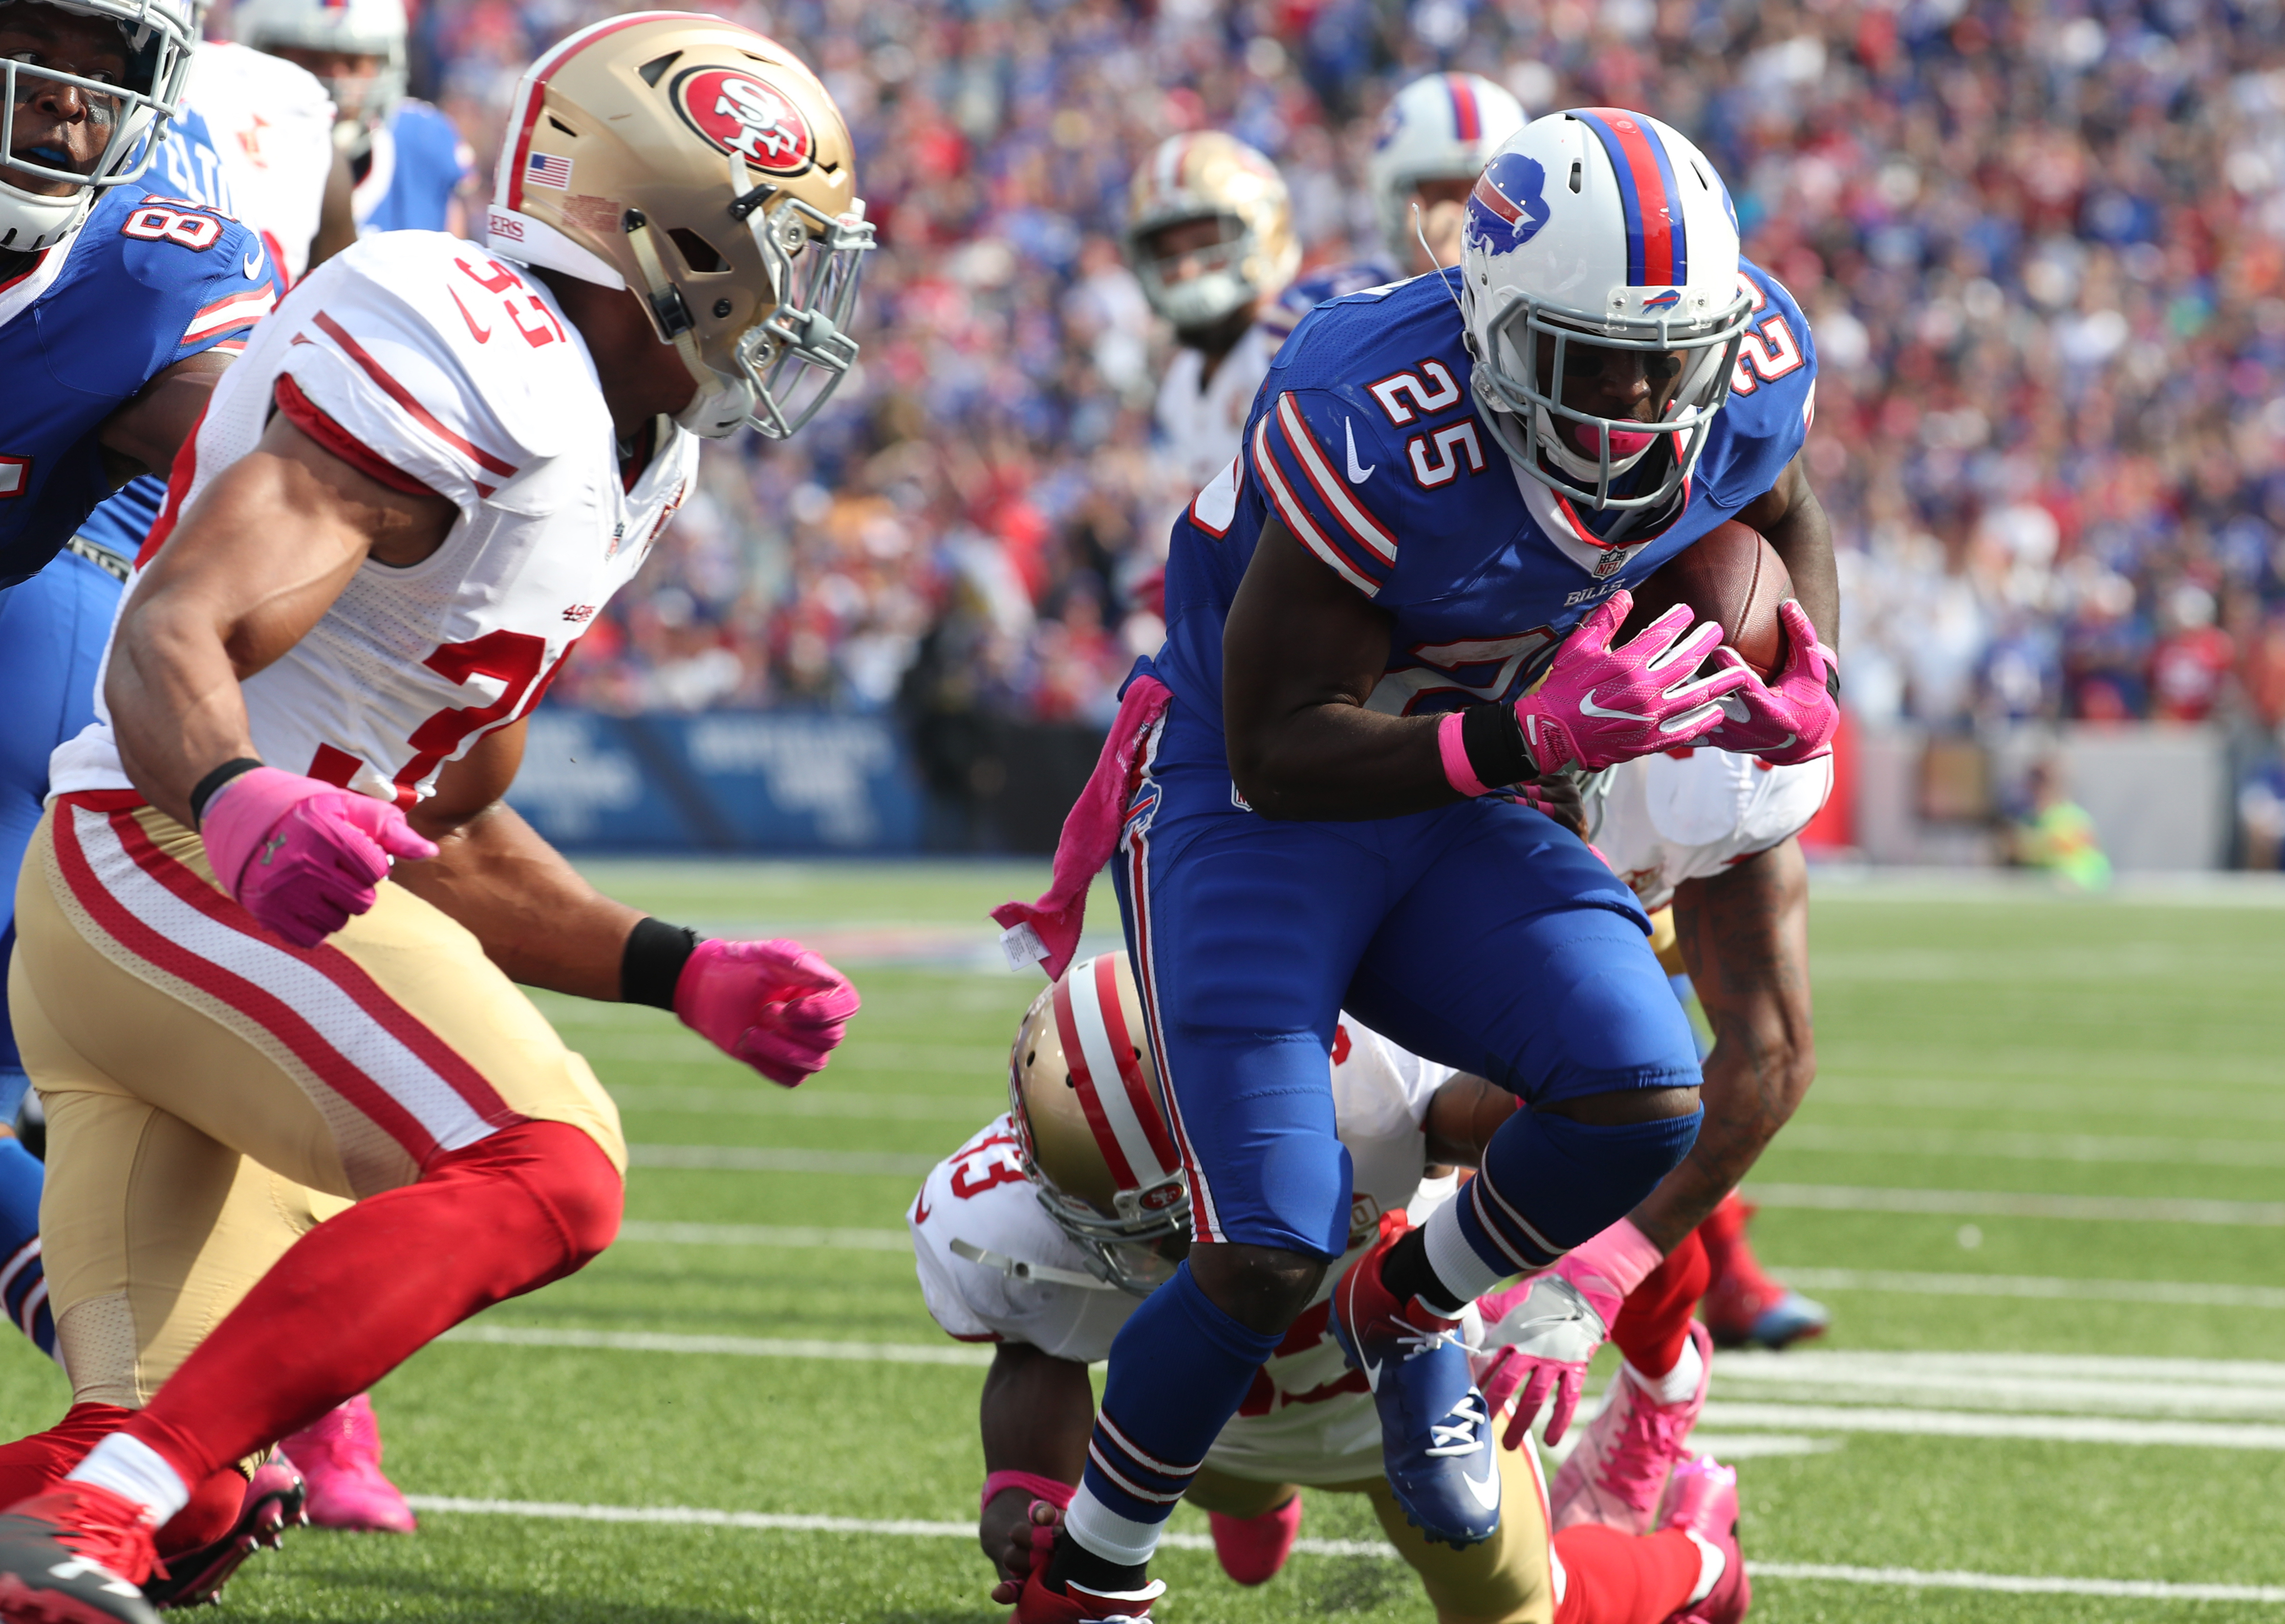 Buffalo Bills running back LeSean McCoy breaks a tackle en route to his second touchdown of the game against the 49ers during the second quarter.  (James P. McCoy/ Buffalo News)